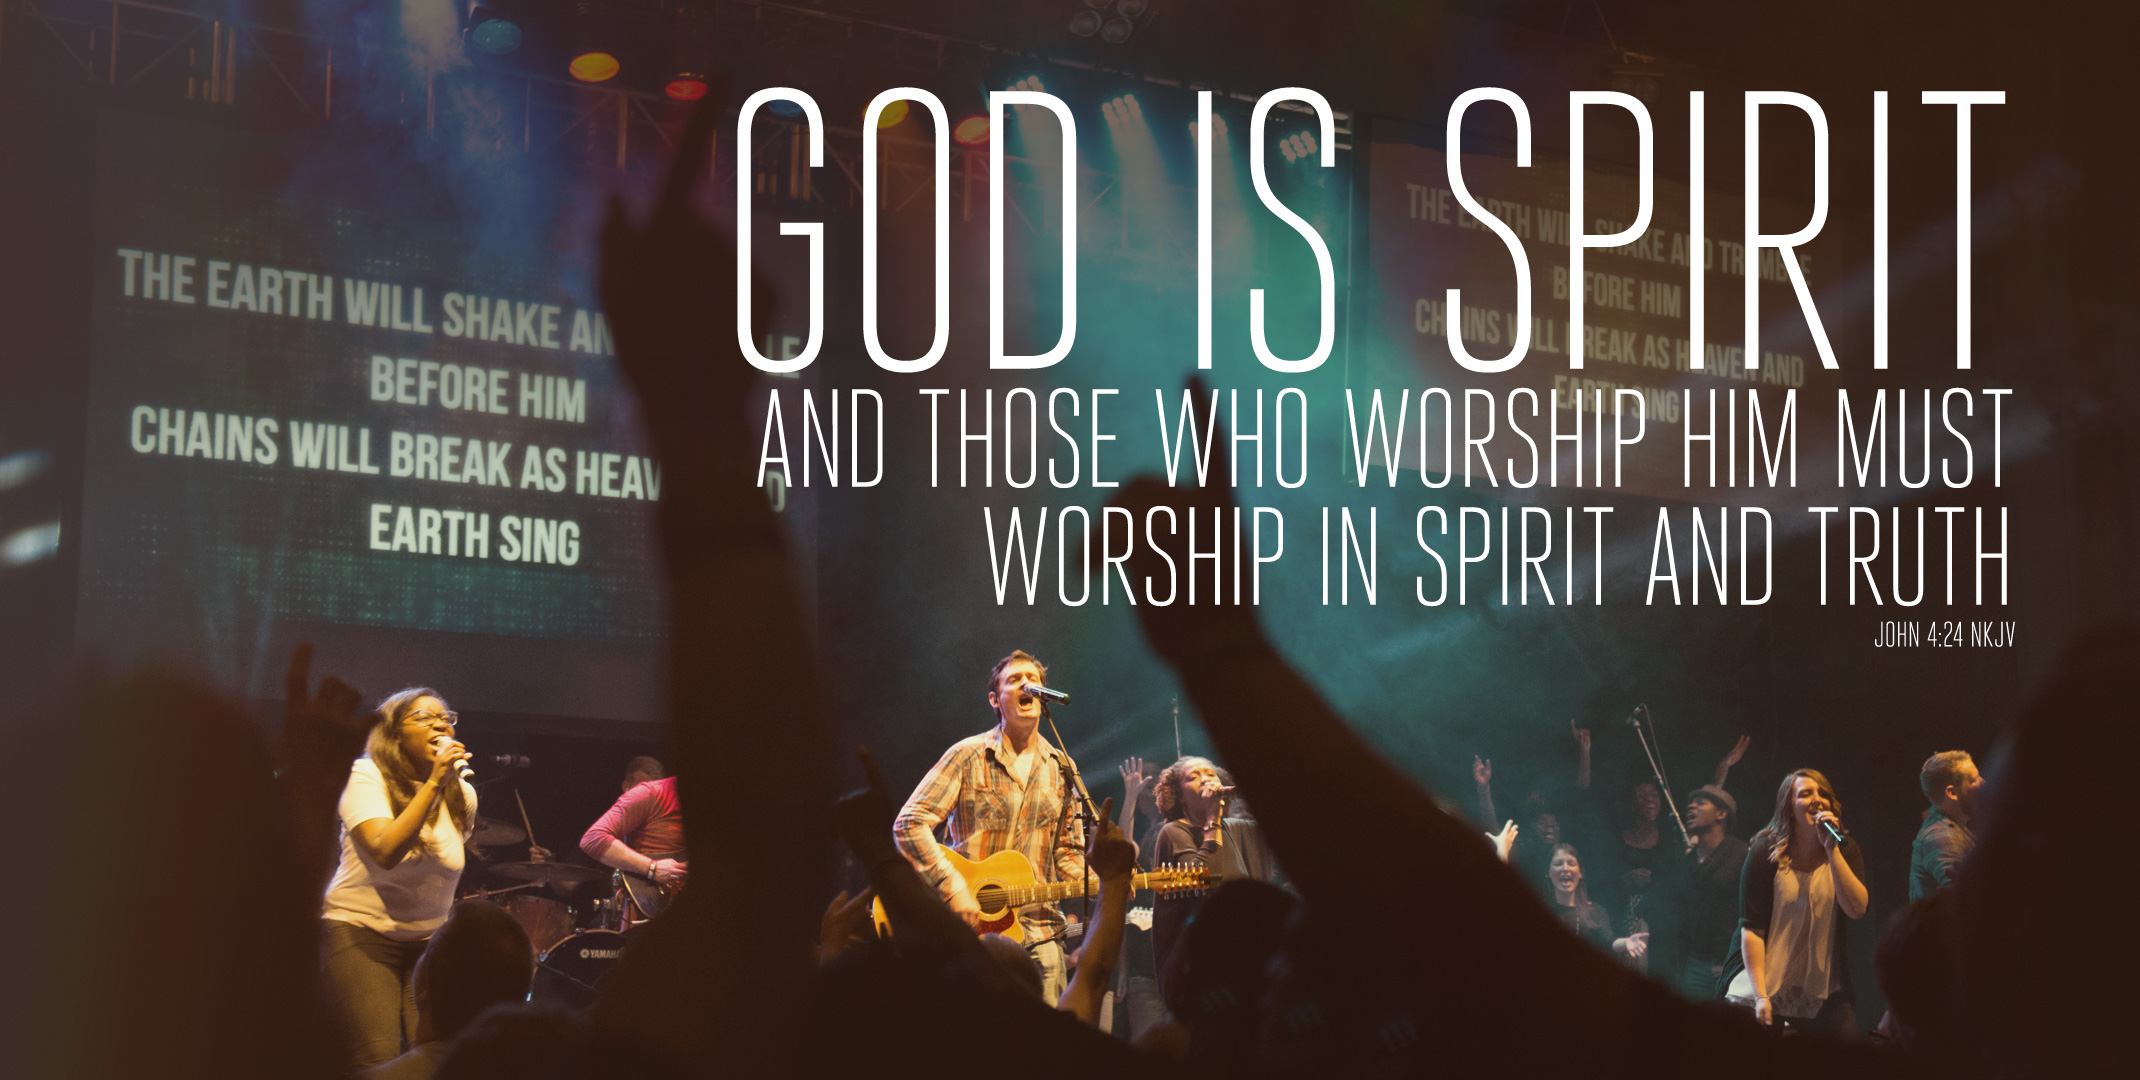 Corporate Worship: which way is right?